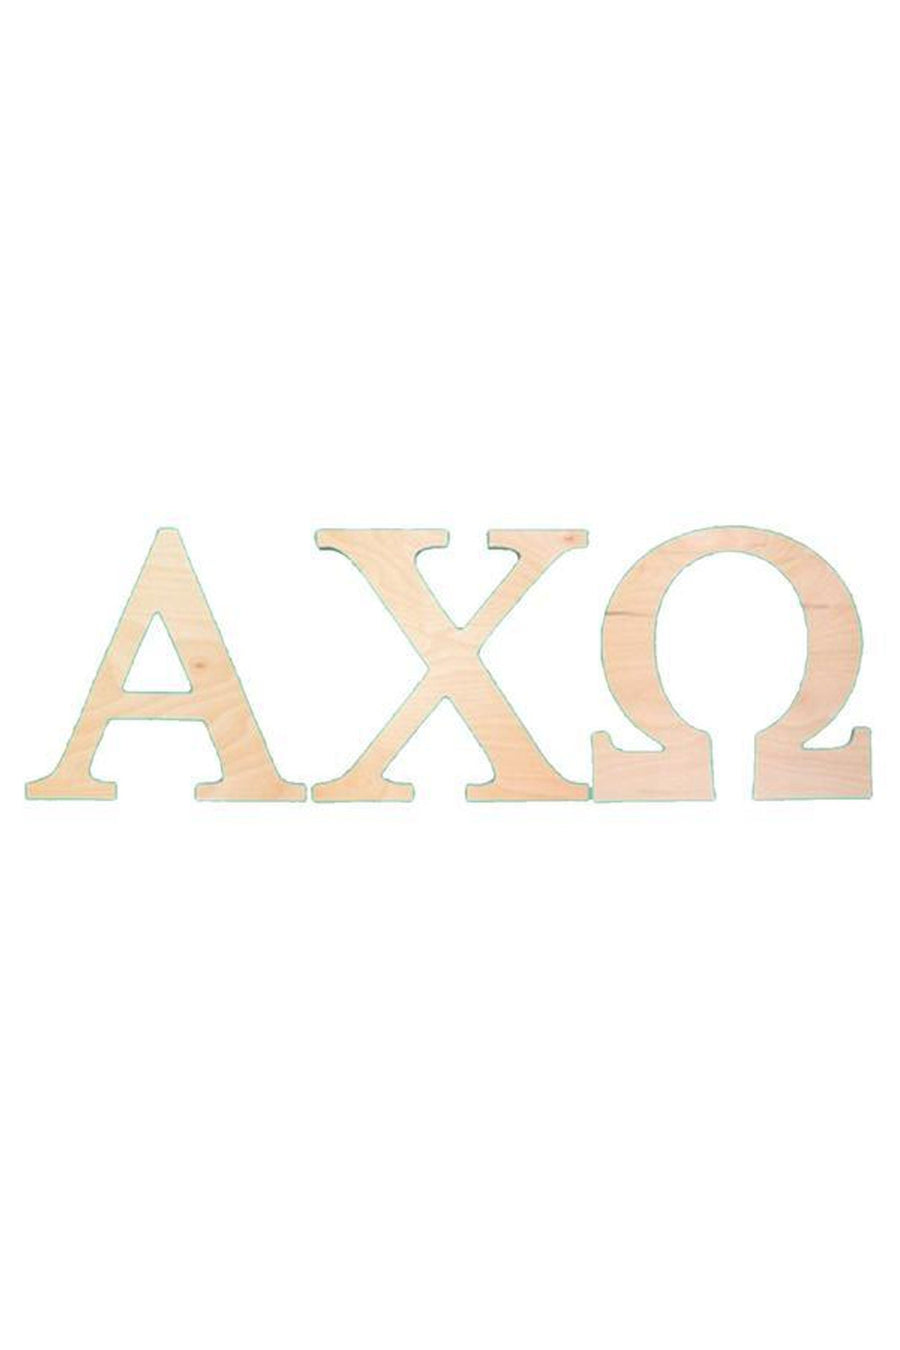 10 Inch Wooden Greek Letters, Home, Sunny and Southern, - Sunny and Southern,